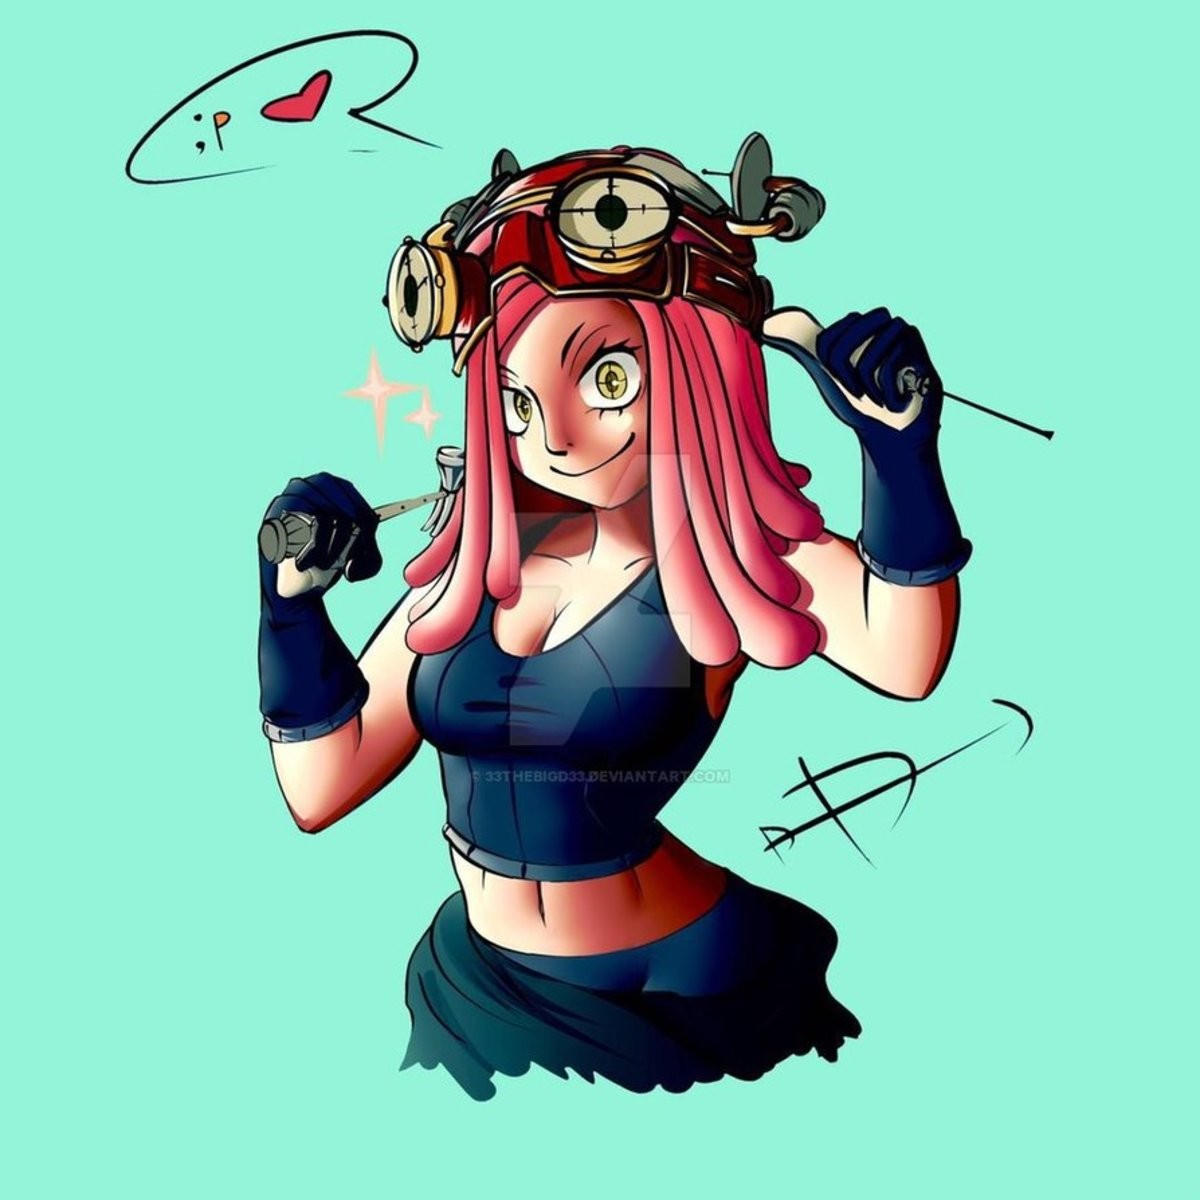 Daily Mei Hatsume Day 208. Source: https://www.deviantart.com/33thebigd33/art/Hatsume-Mei-Fanart-795443808 join list: MeiHatsumeisbestgirl (166 subs)Mention His